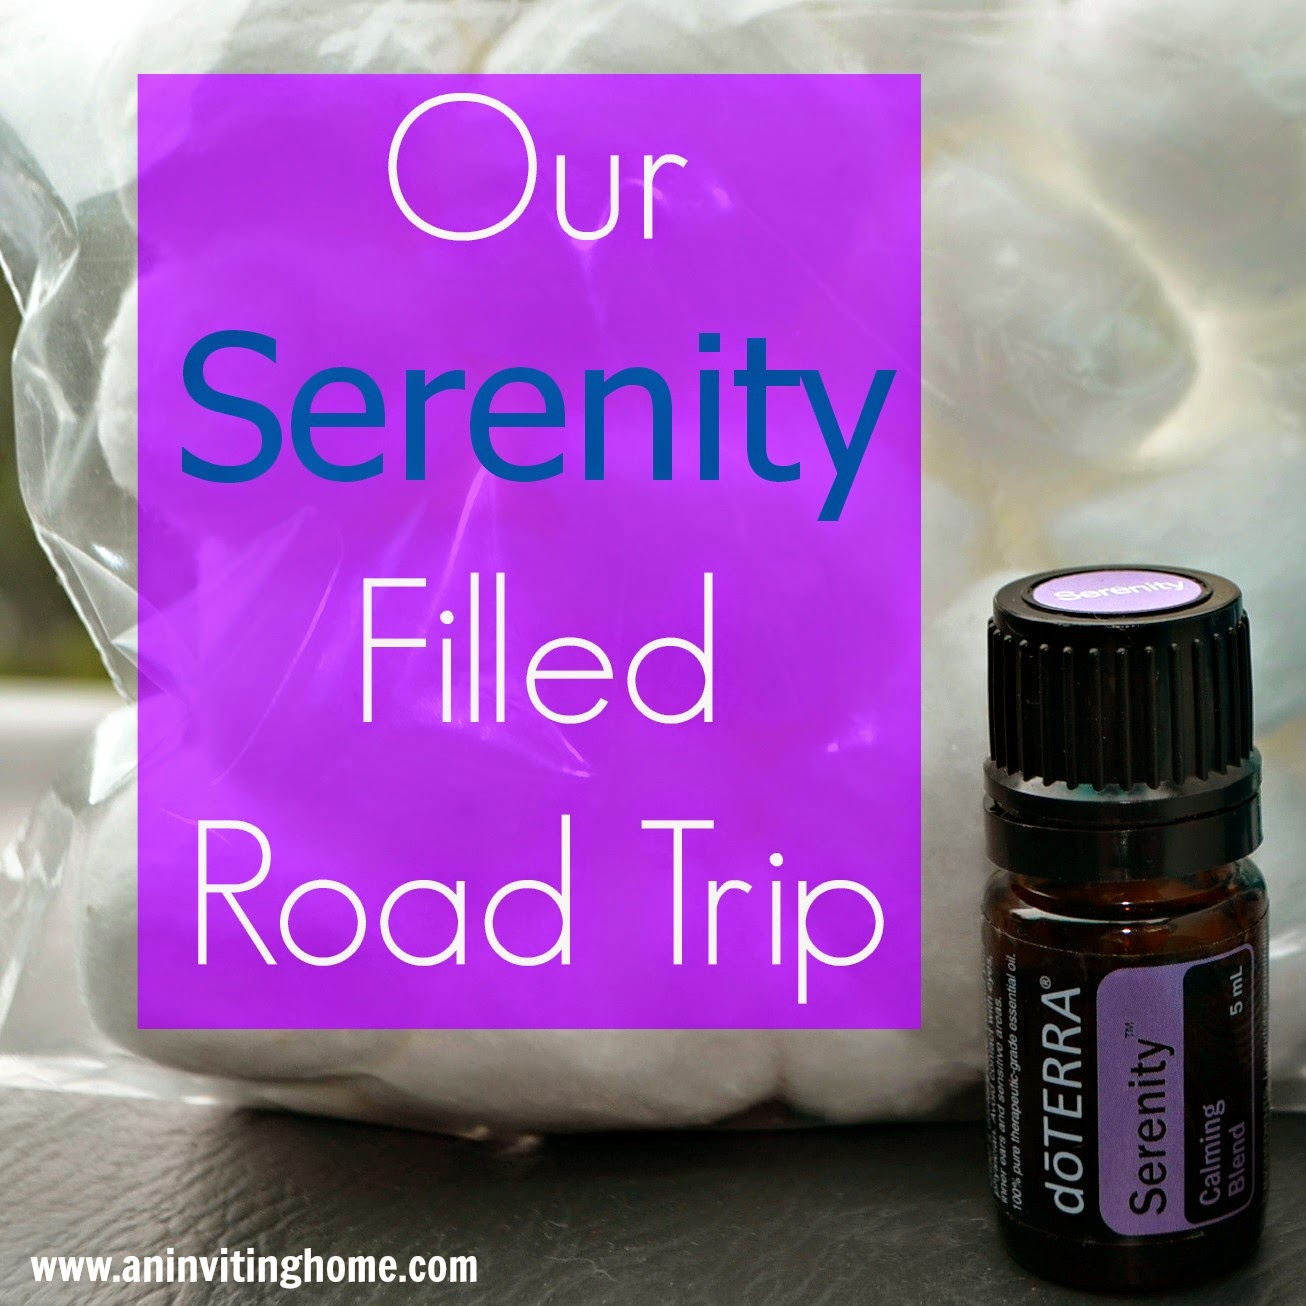 Our Serenity Filled Road Trip doTERRA